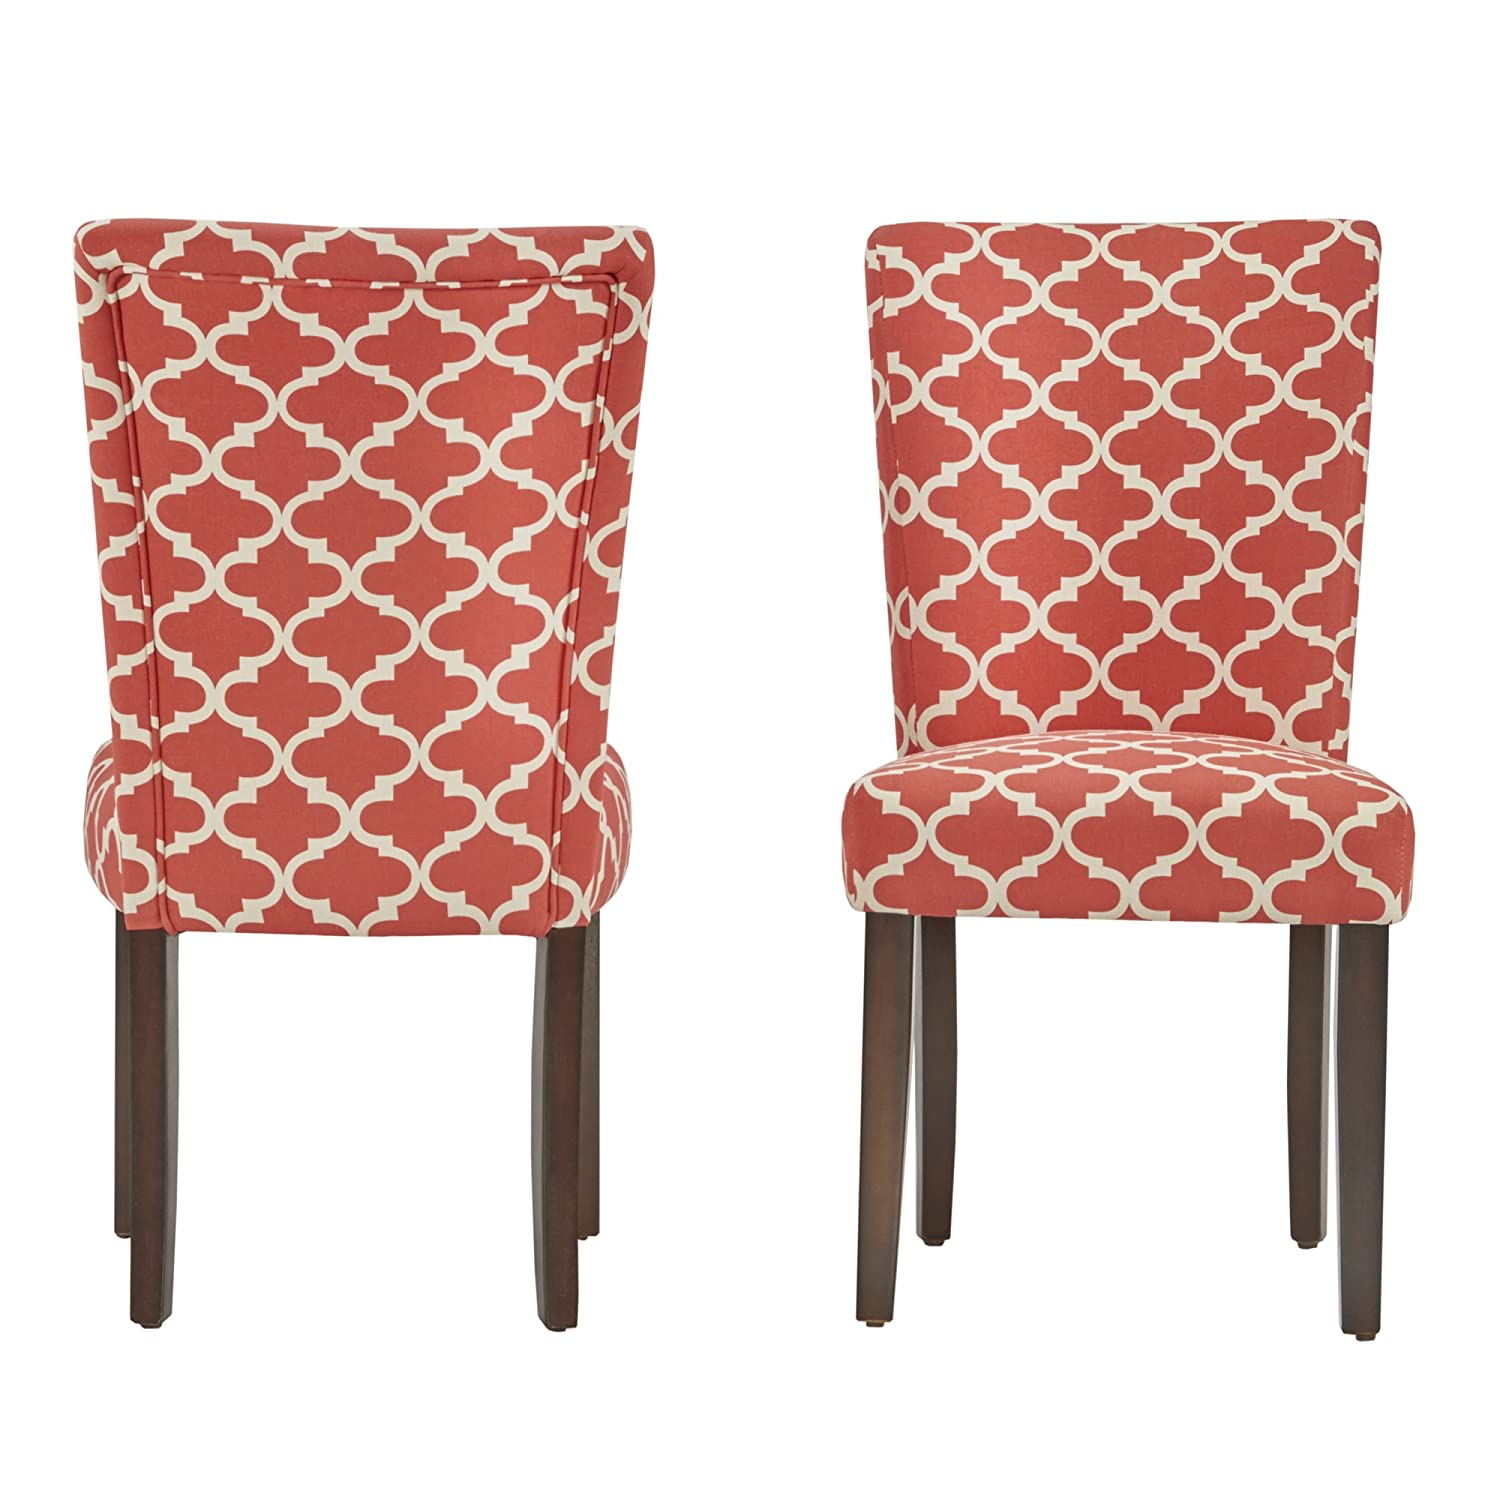 ModHaus Modern Red Fabric Moroccan Quatrefoil Pattern Parsons Style Dining Chairs Wood Finish Wooden Legs – Set of 2 Includes ModHaus Living TM Pen